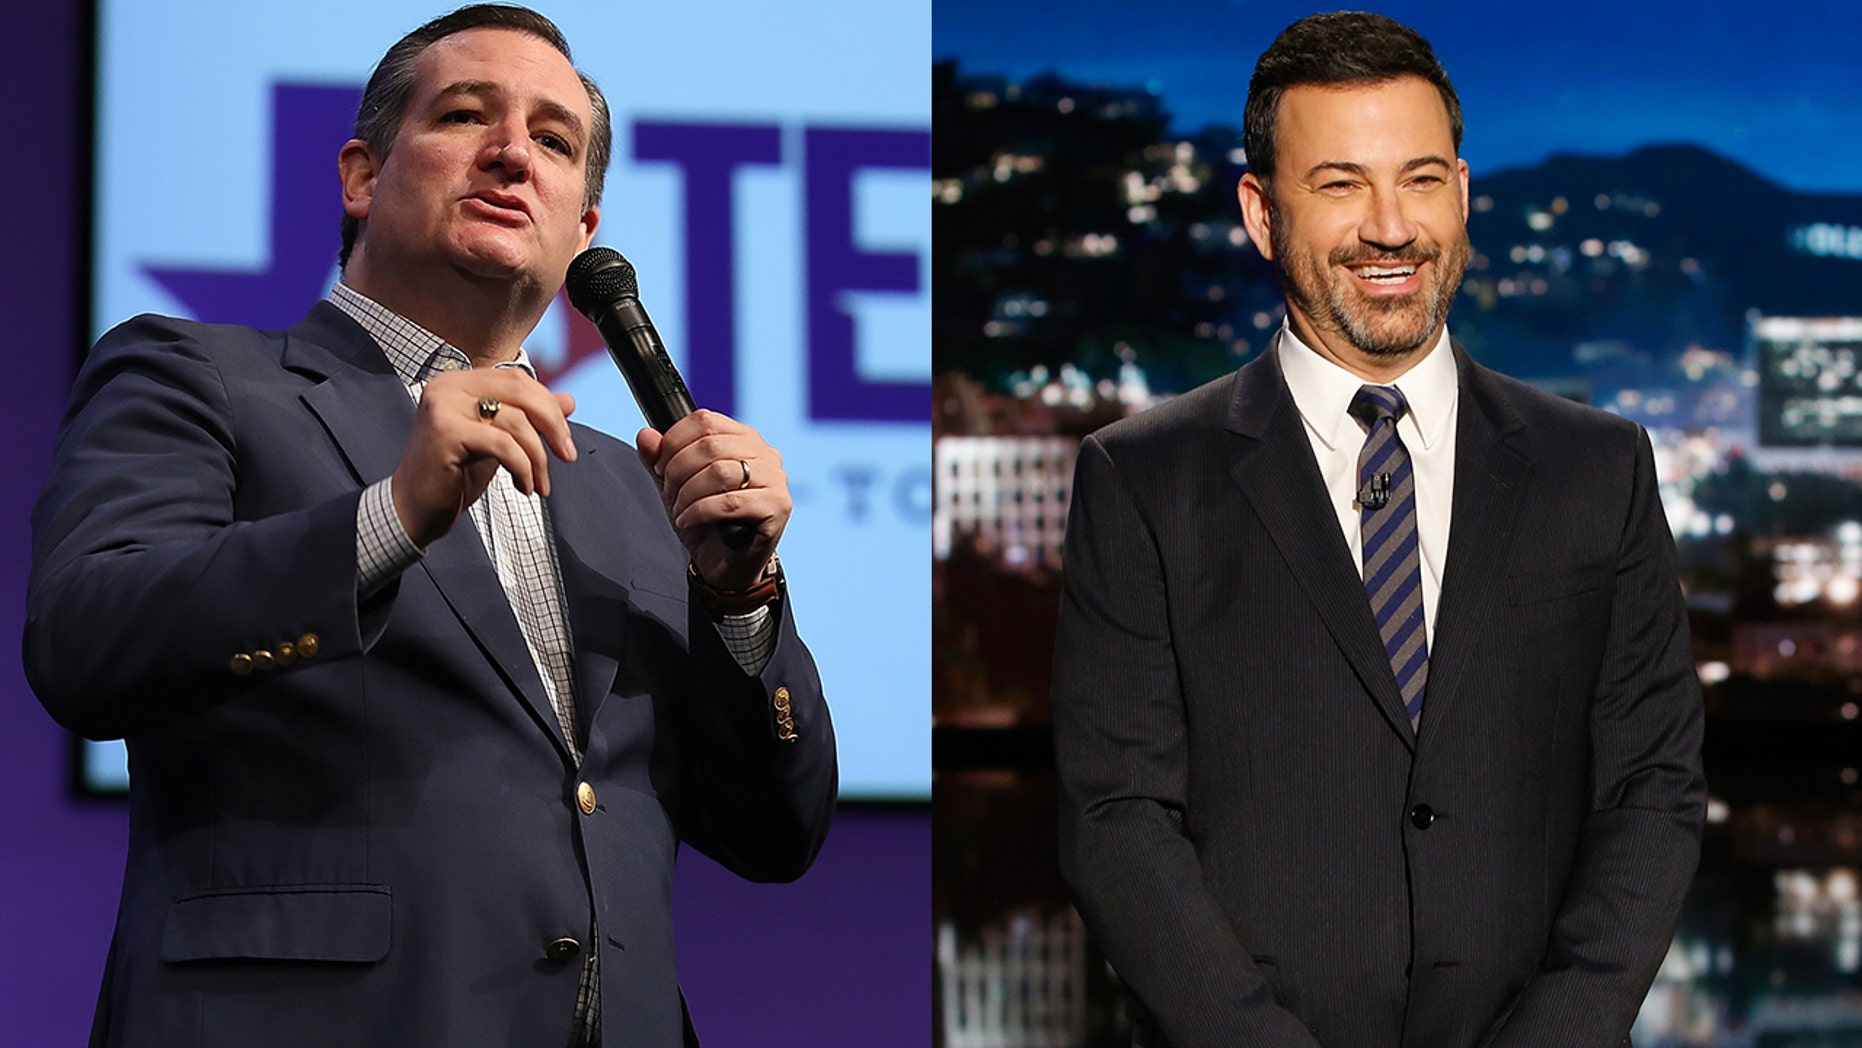 Ted Cruz fired back at Jimmy Kimmel after a sketch on his late-night show.